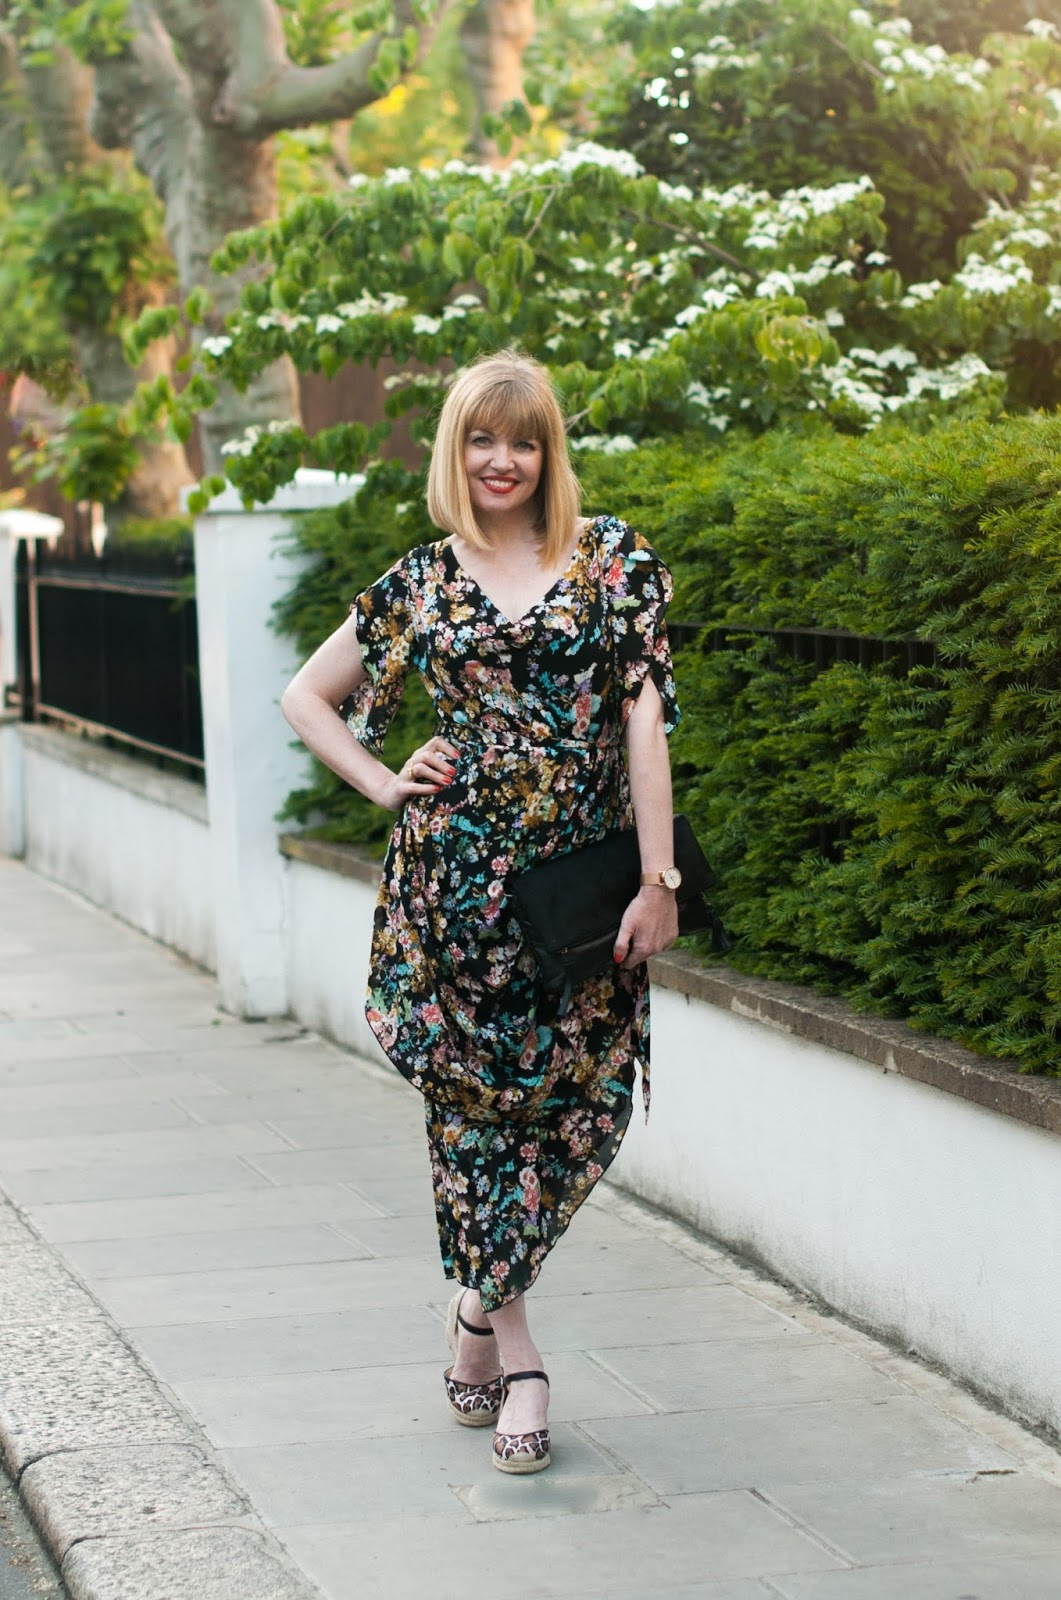 Floral draped vintage style dress with leopard print espadrilles, black clutch over 40 style